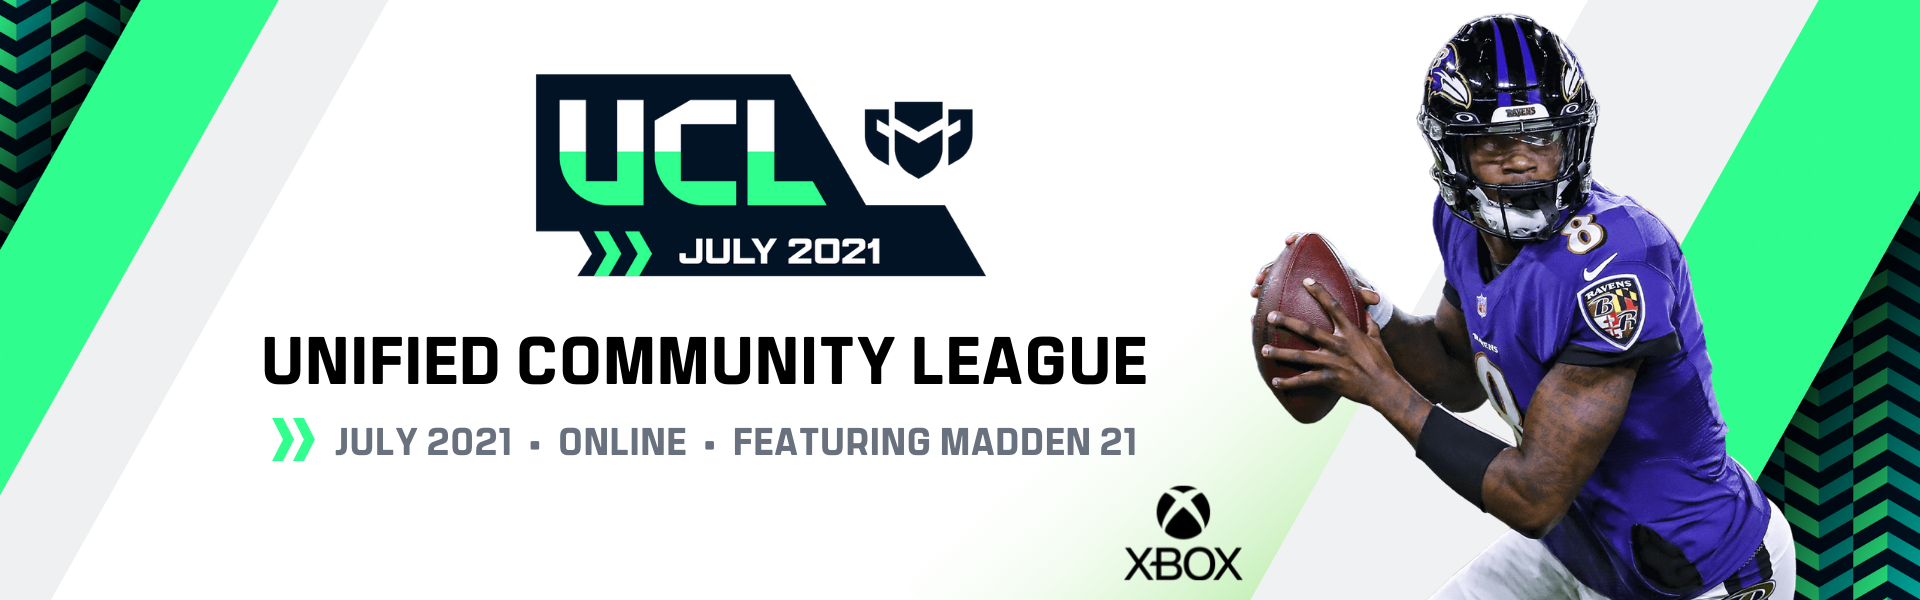 July UCL: Featuring Madden 21 – XBOX